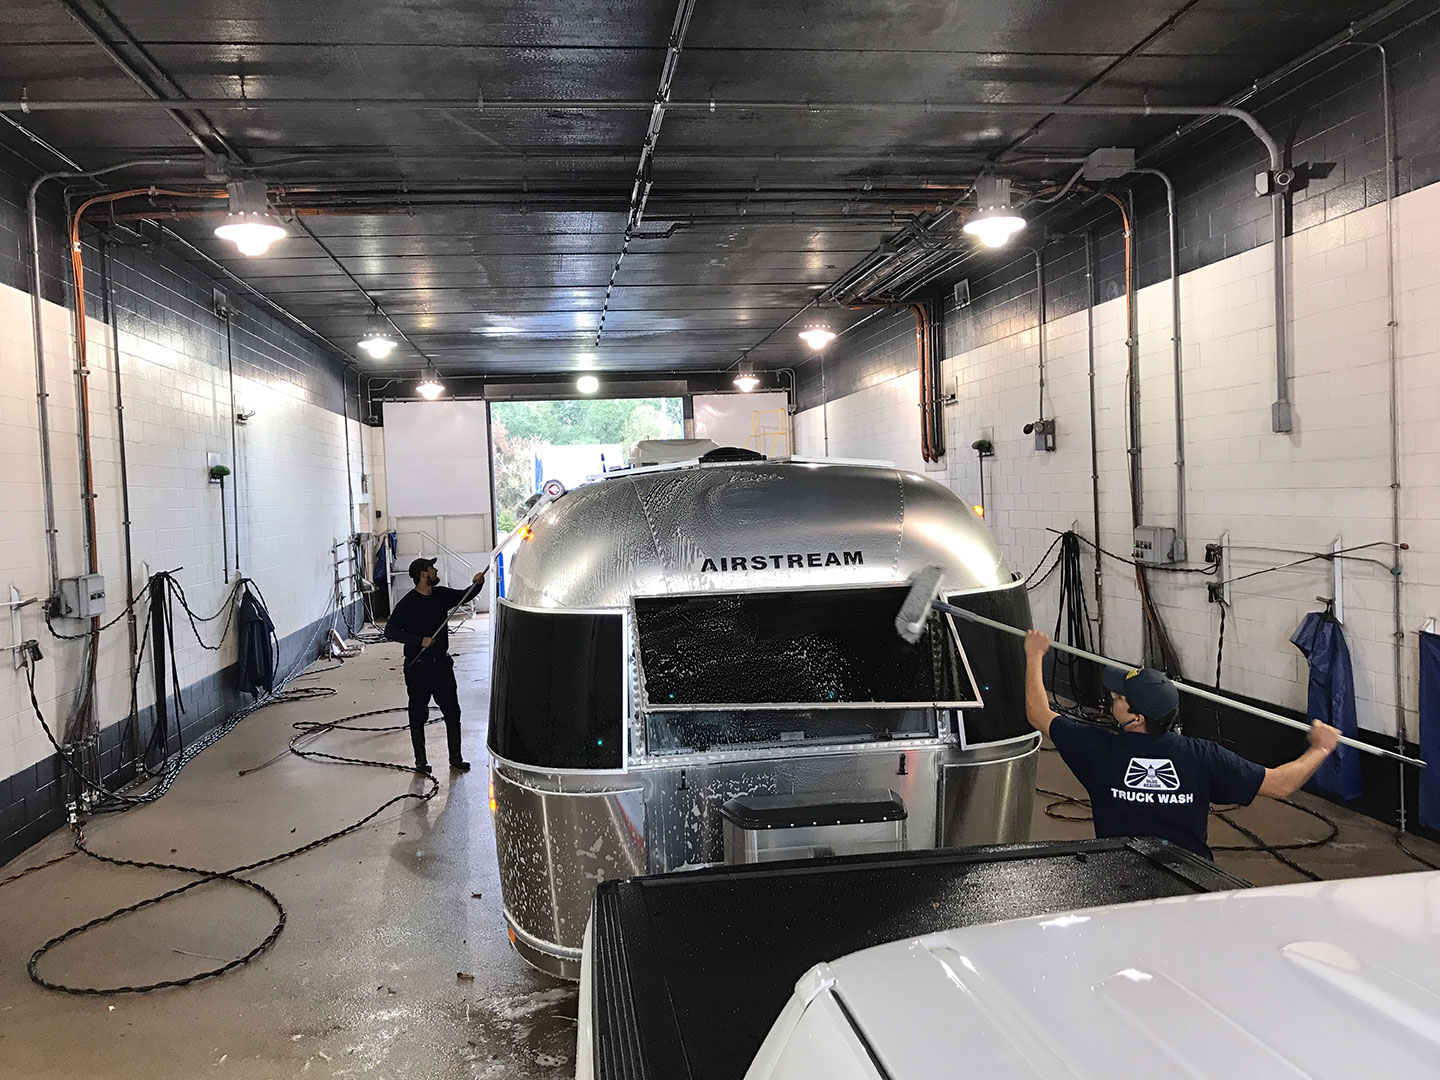 airstream-wash